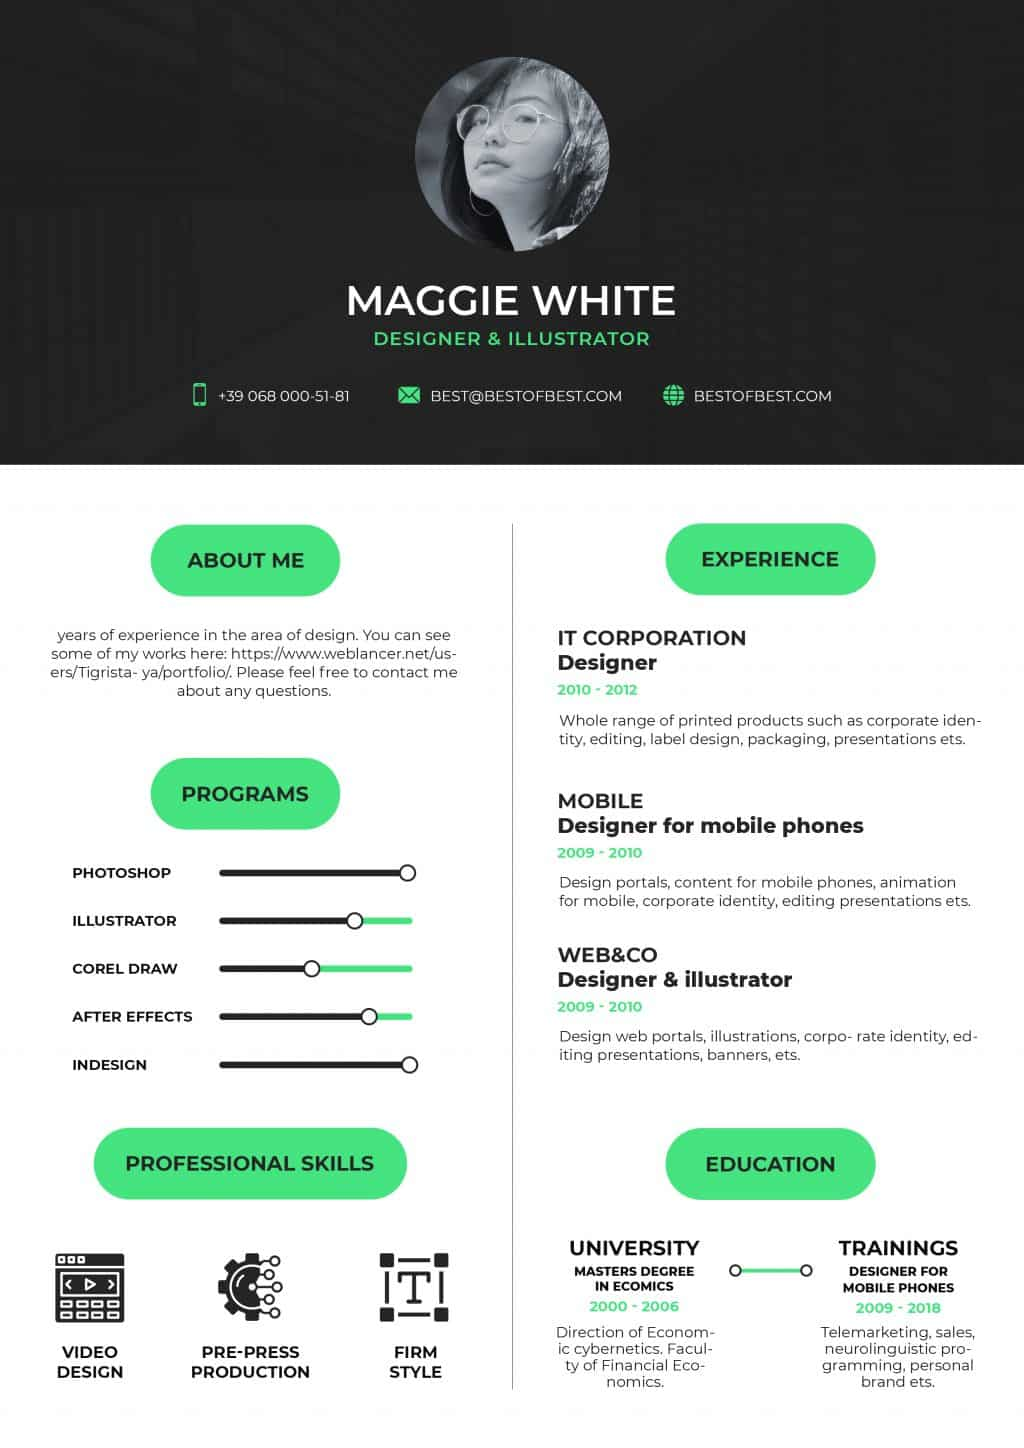 Best College Resume Templates 2020: 5 colors - $8 - resume 1 1